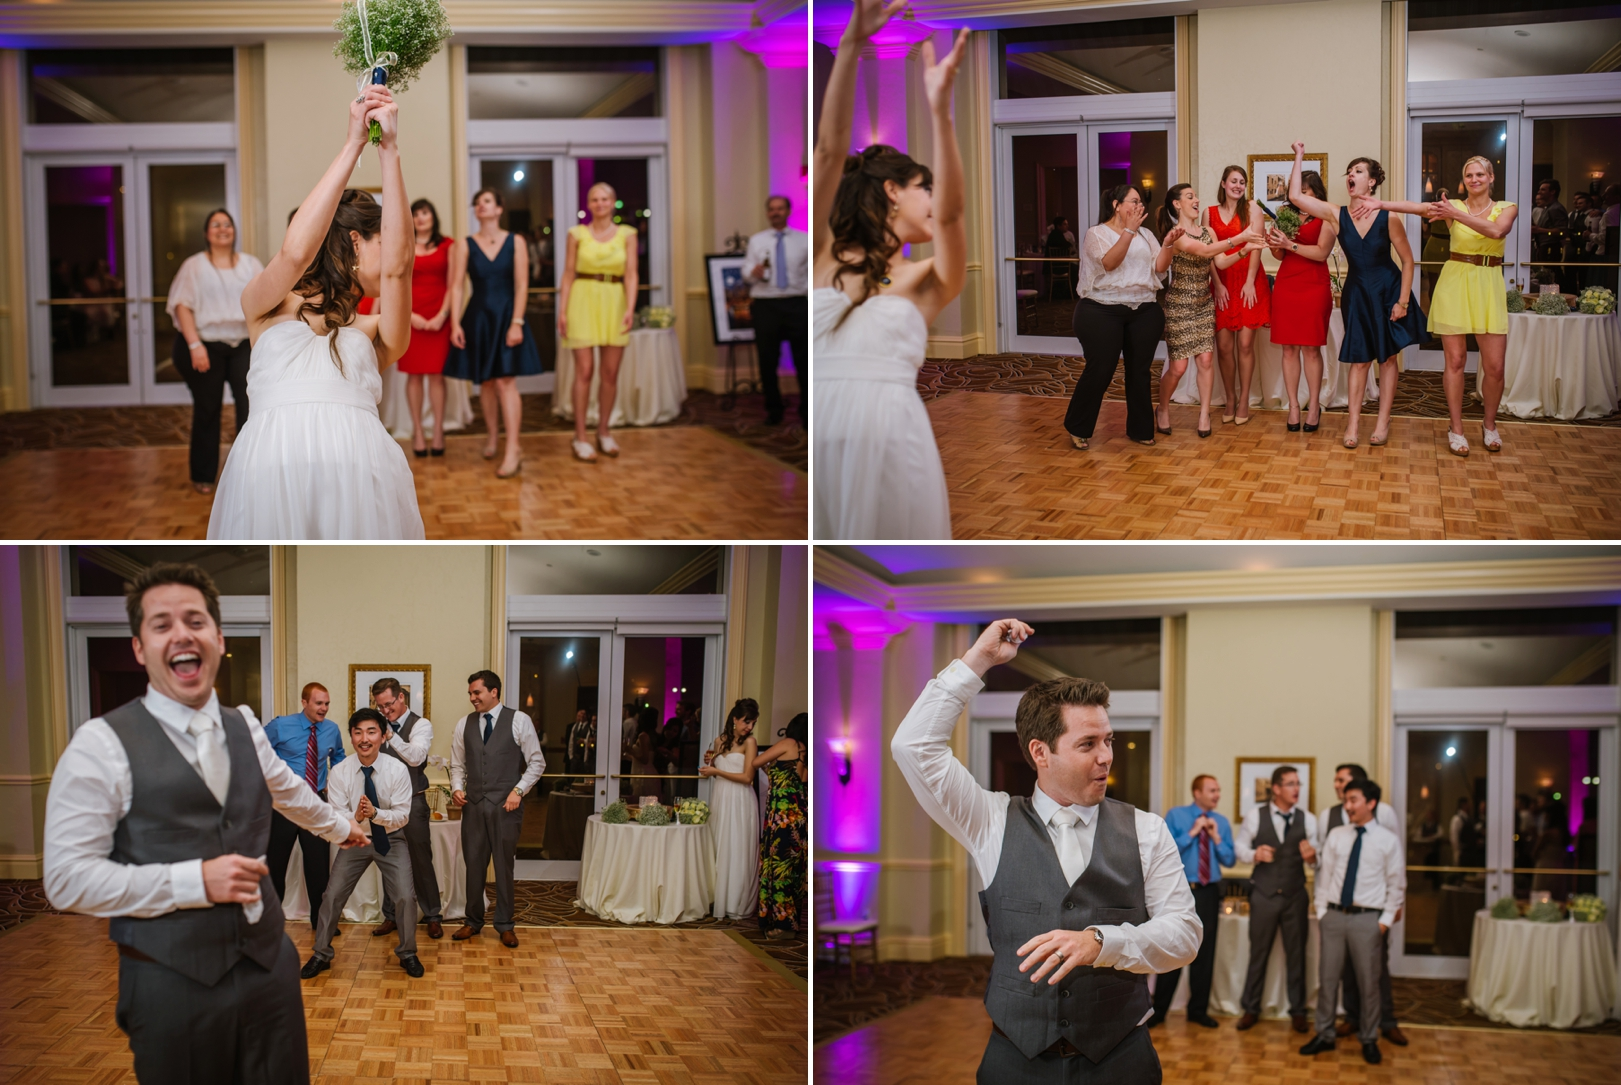 tampa-wedding-photography-traditional-cathedral-wedding_0022.jpg